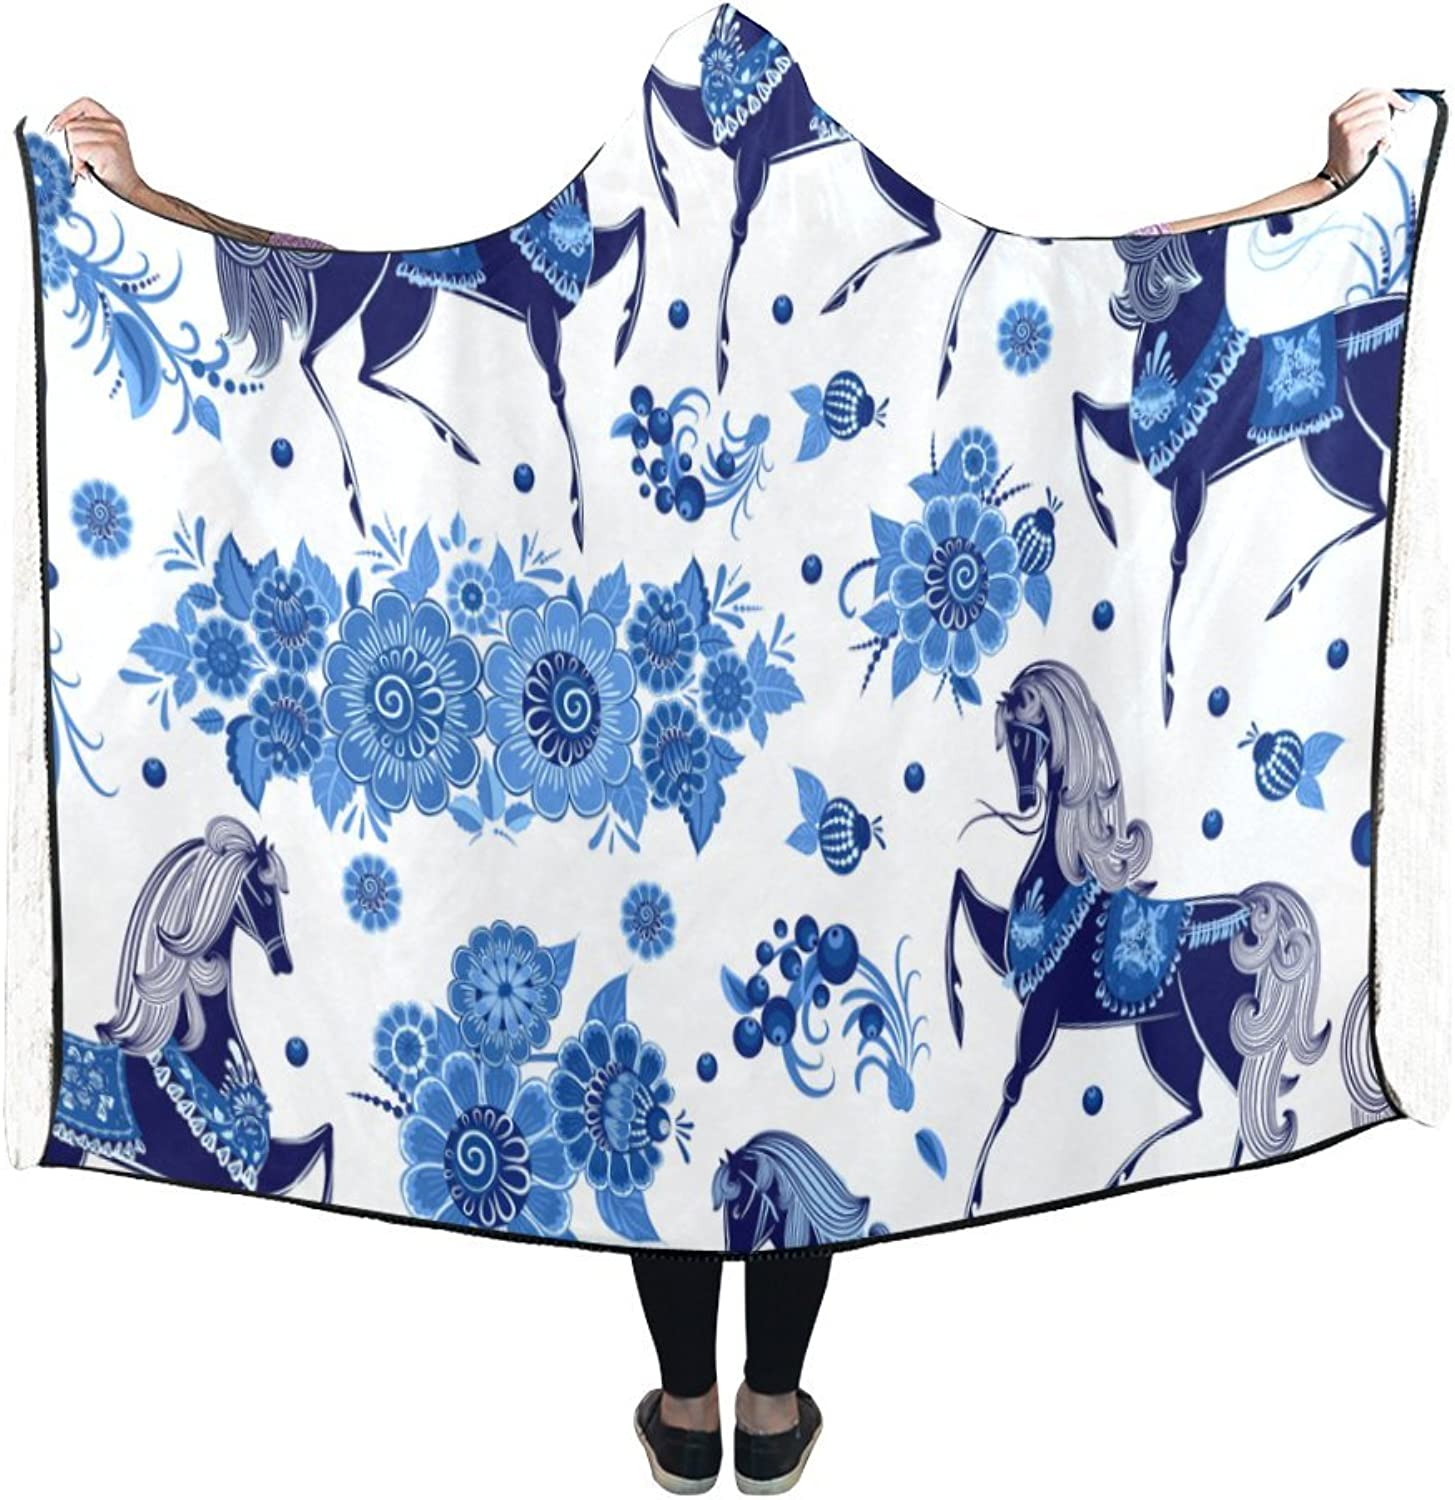 Veronica Rockefeller Indoor Fleece Hooded Blanket, Beautiful Floral Horse Pattern Stylish Wearable Hood blankets 80 x 60 inches